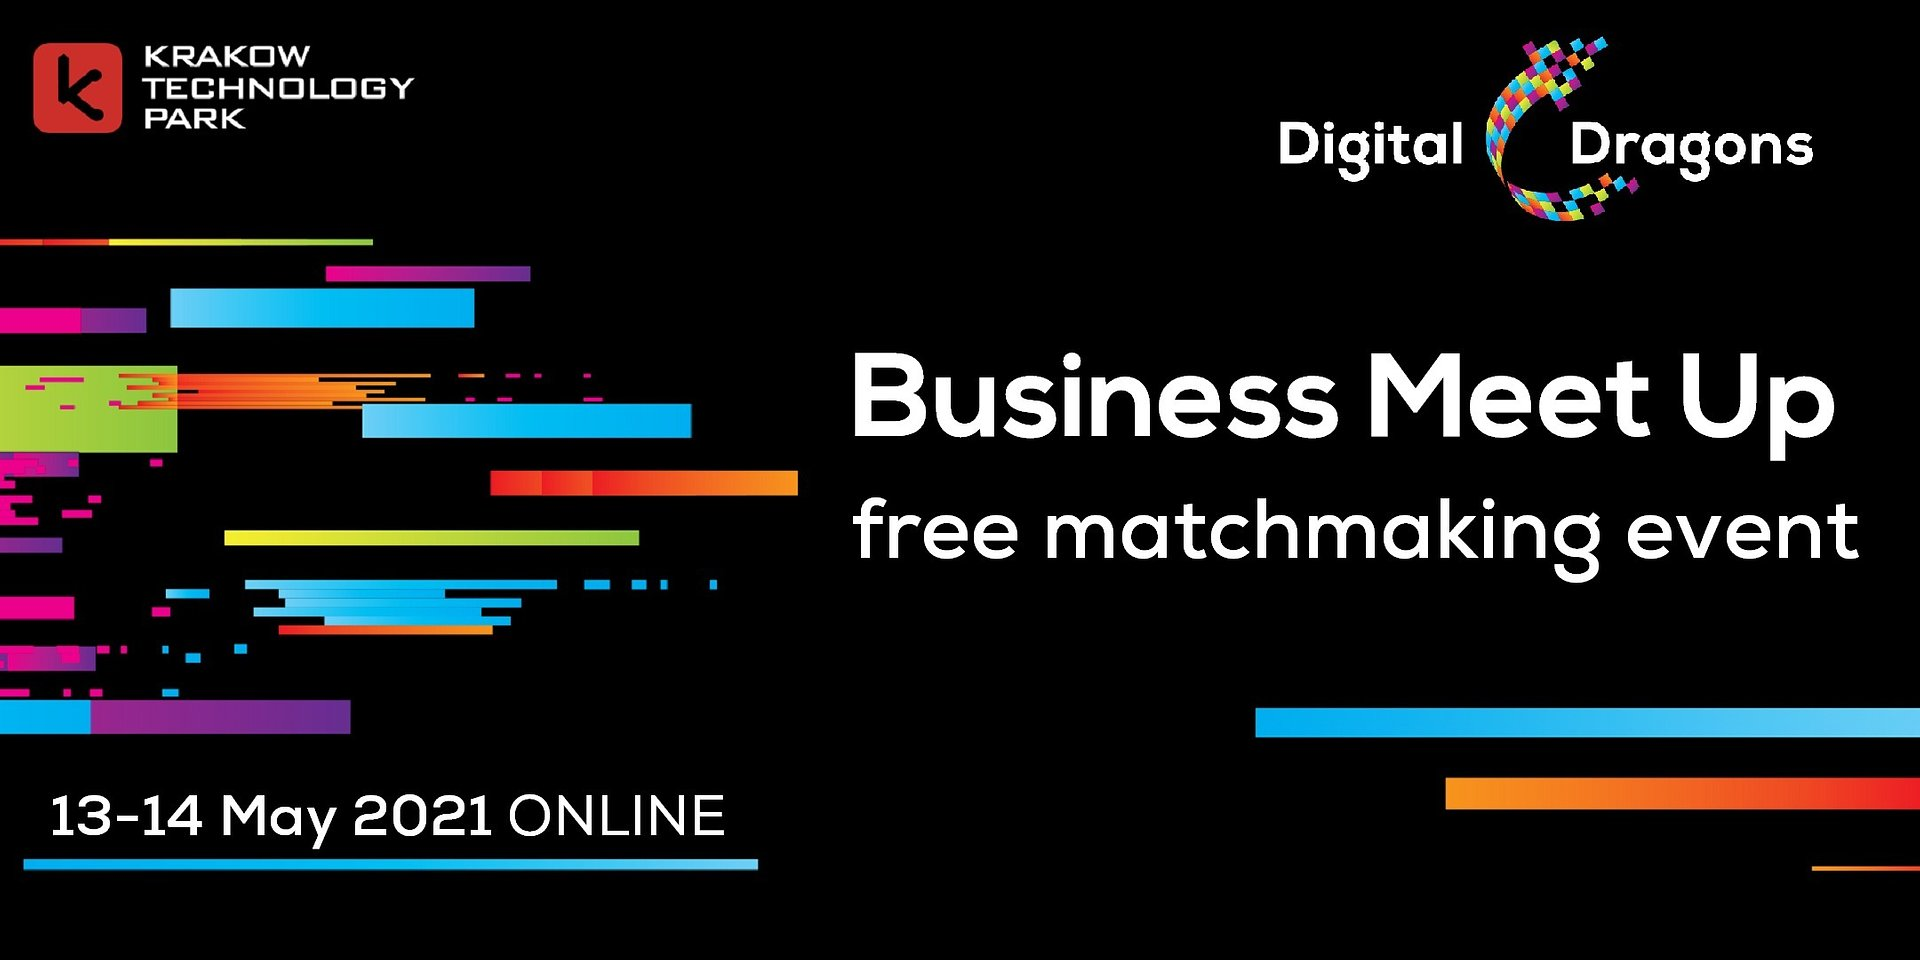 Digital Dragons Business Meet Up free matchmaking event is coming in May. Registration has already started!